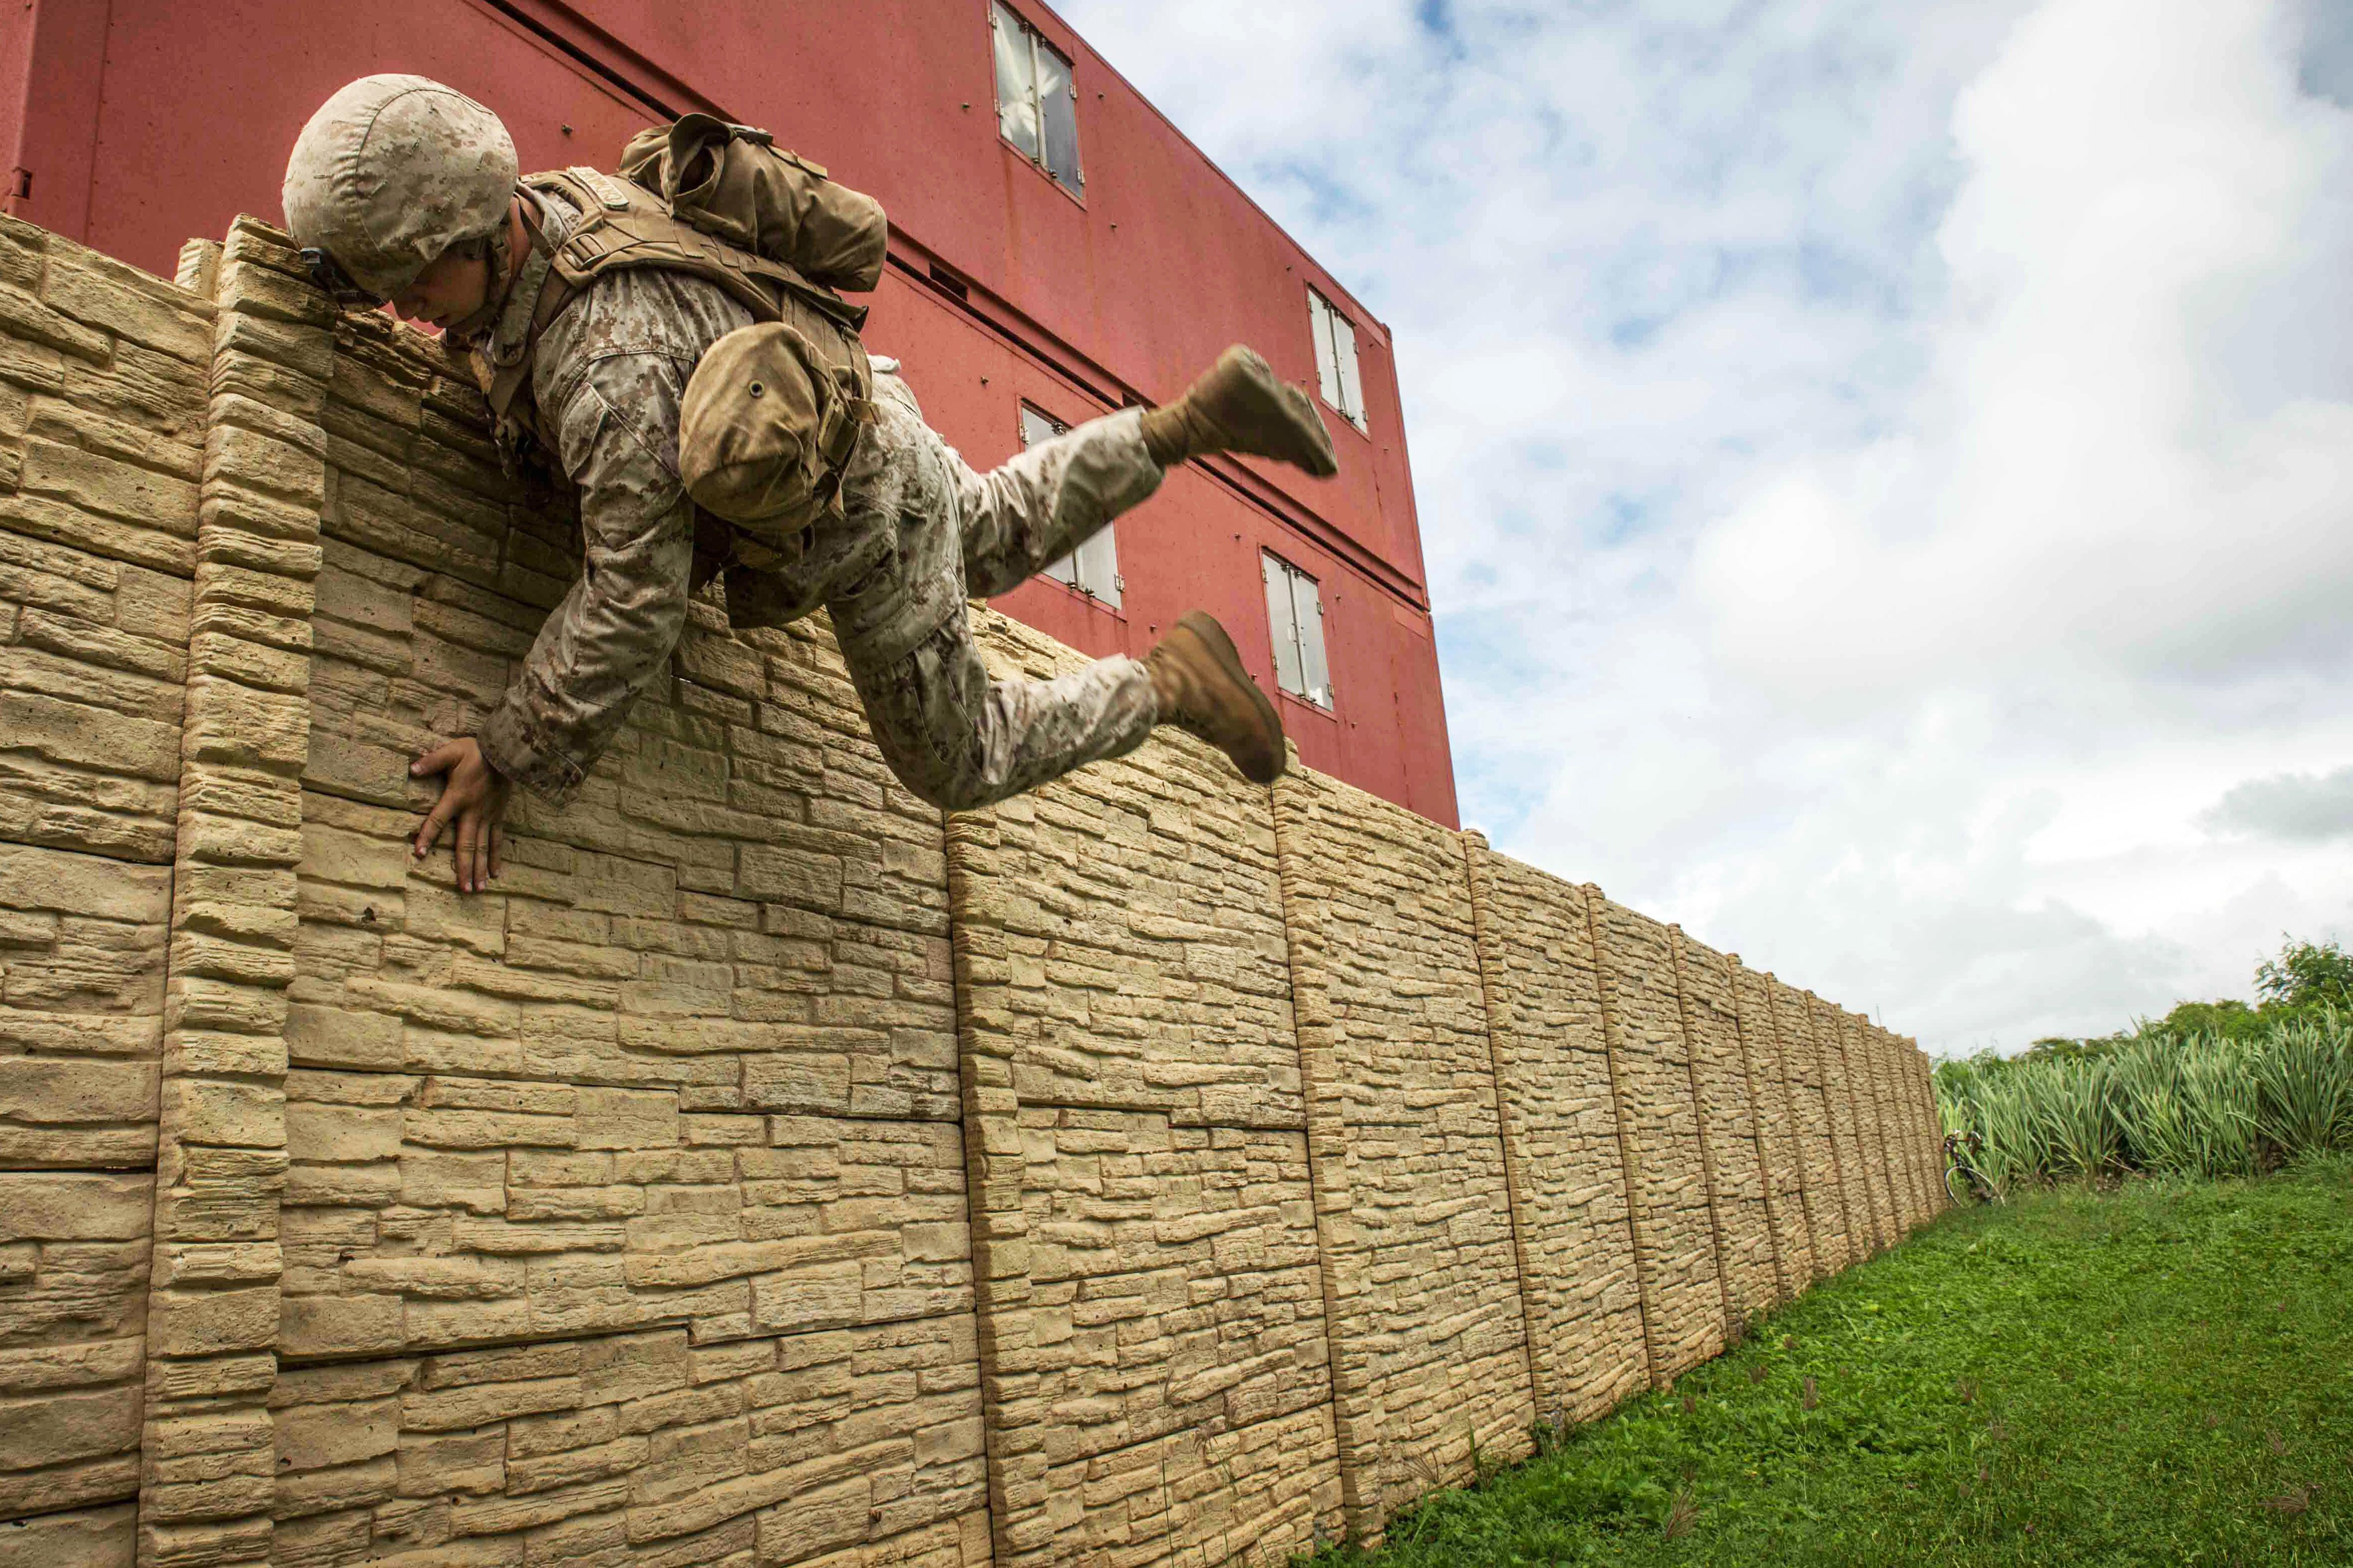 All units performing maintenance are ... - sill-www.army.mil